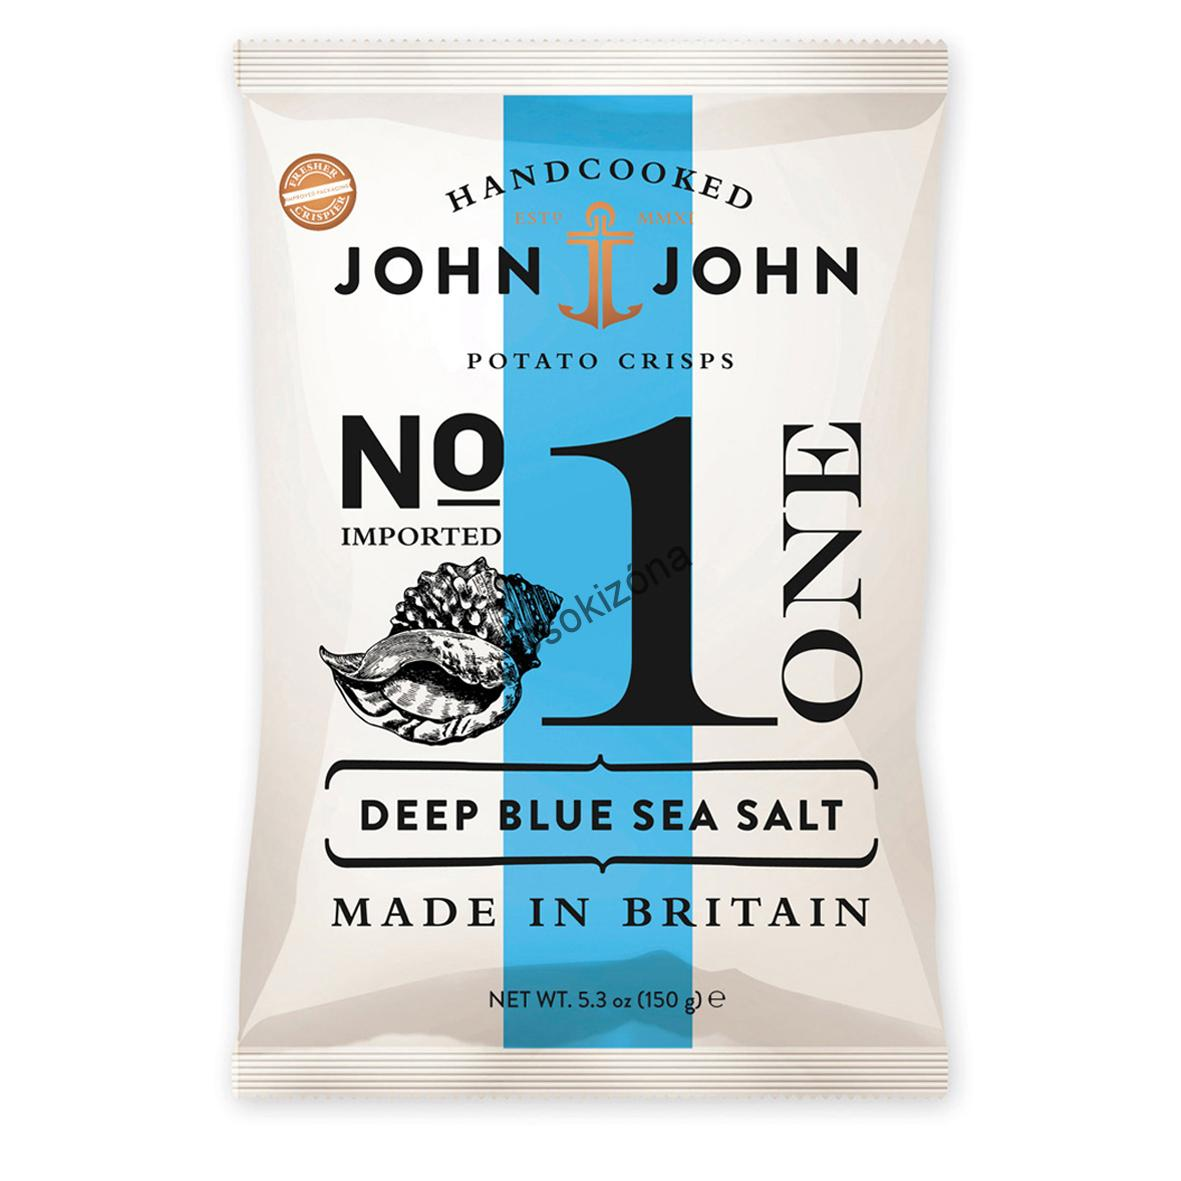 John&John Deep Blue Sea Salt